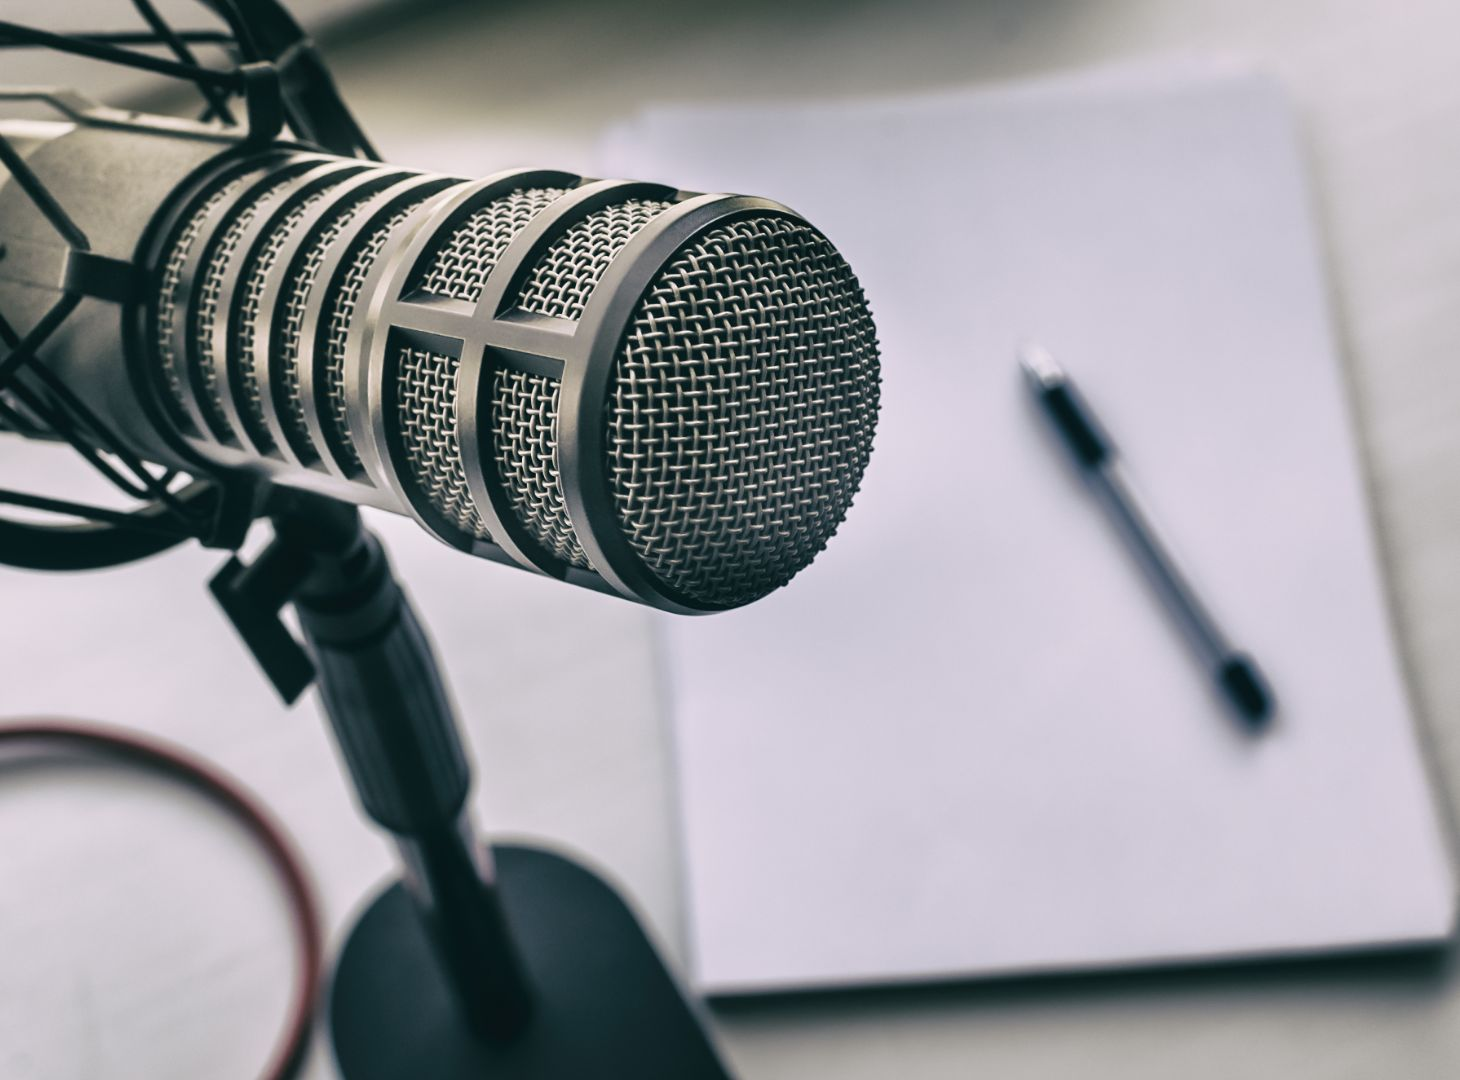 Image of Microphone next to a pen on paper